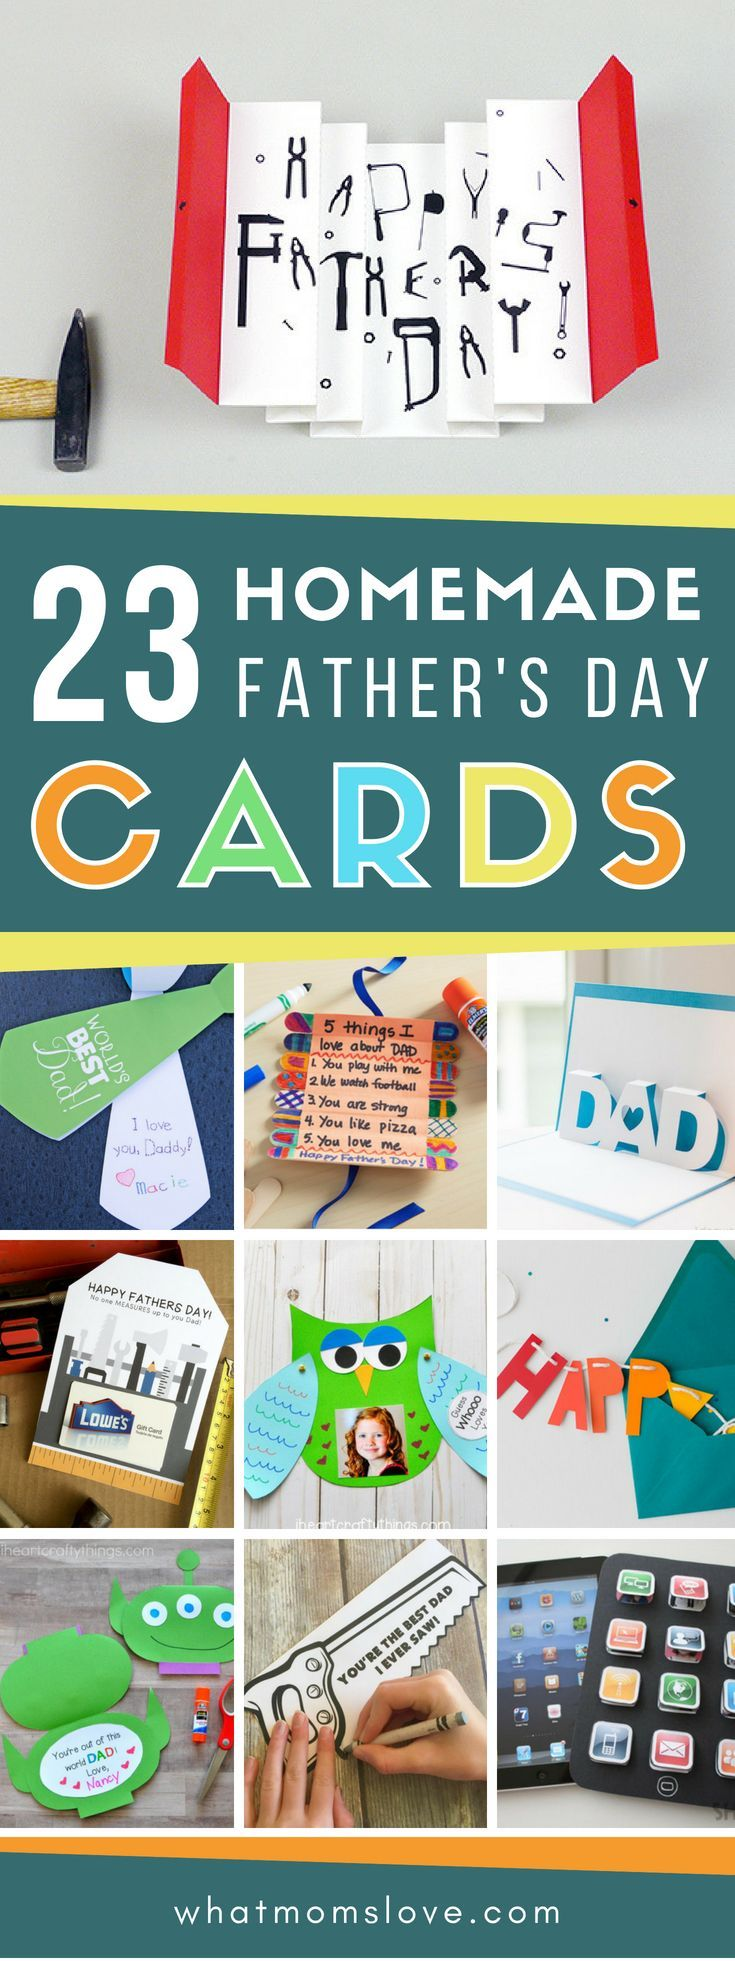 138 best Father's Day Gifts, Recipes, Crafts images by Simple Easy